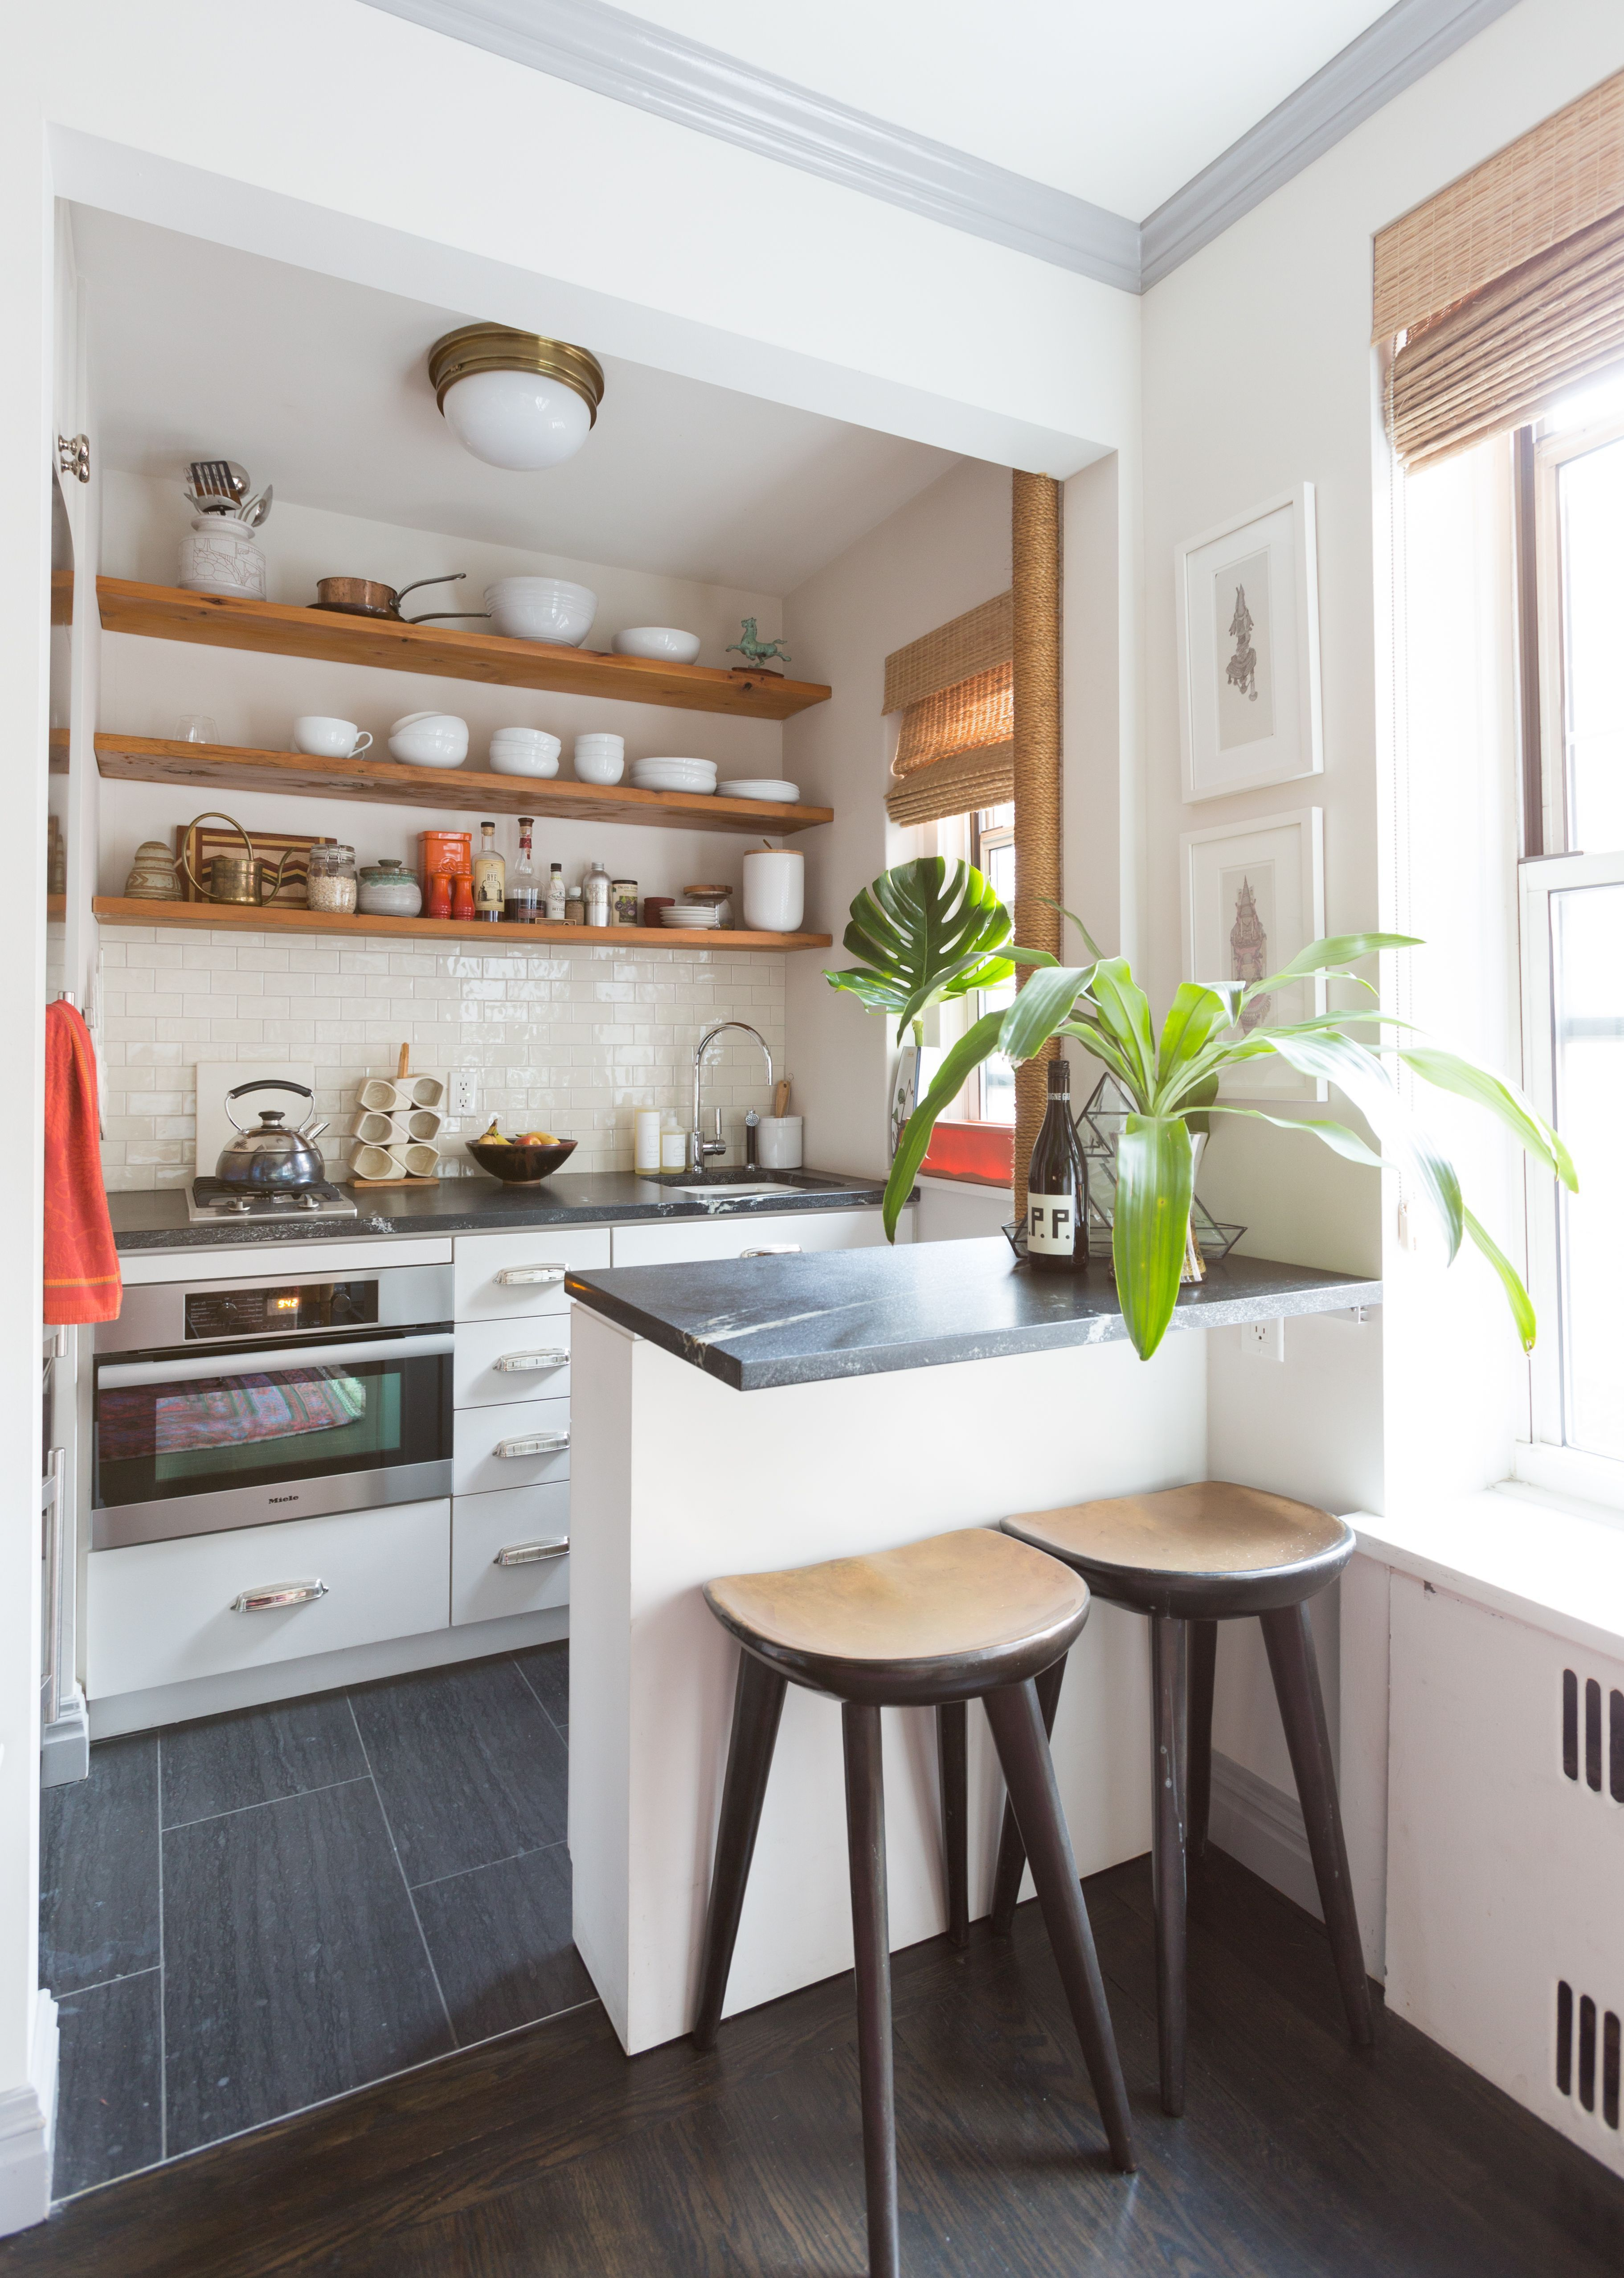 Such a tiny kitchen yet the open shelving makes it feel bigger